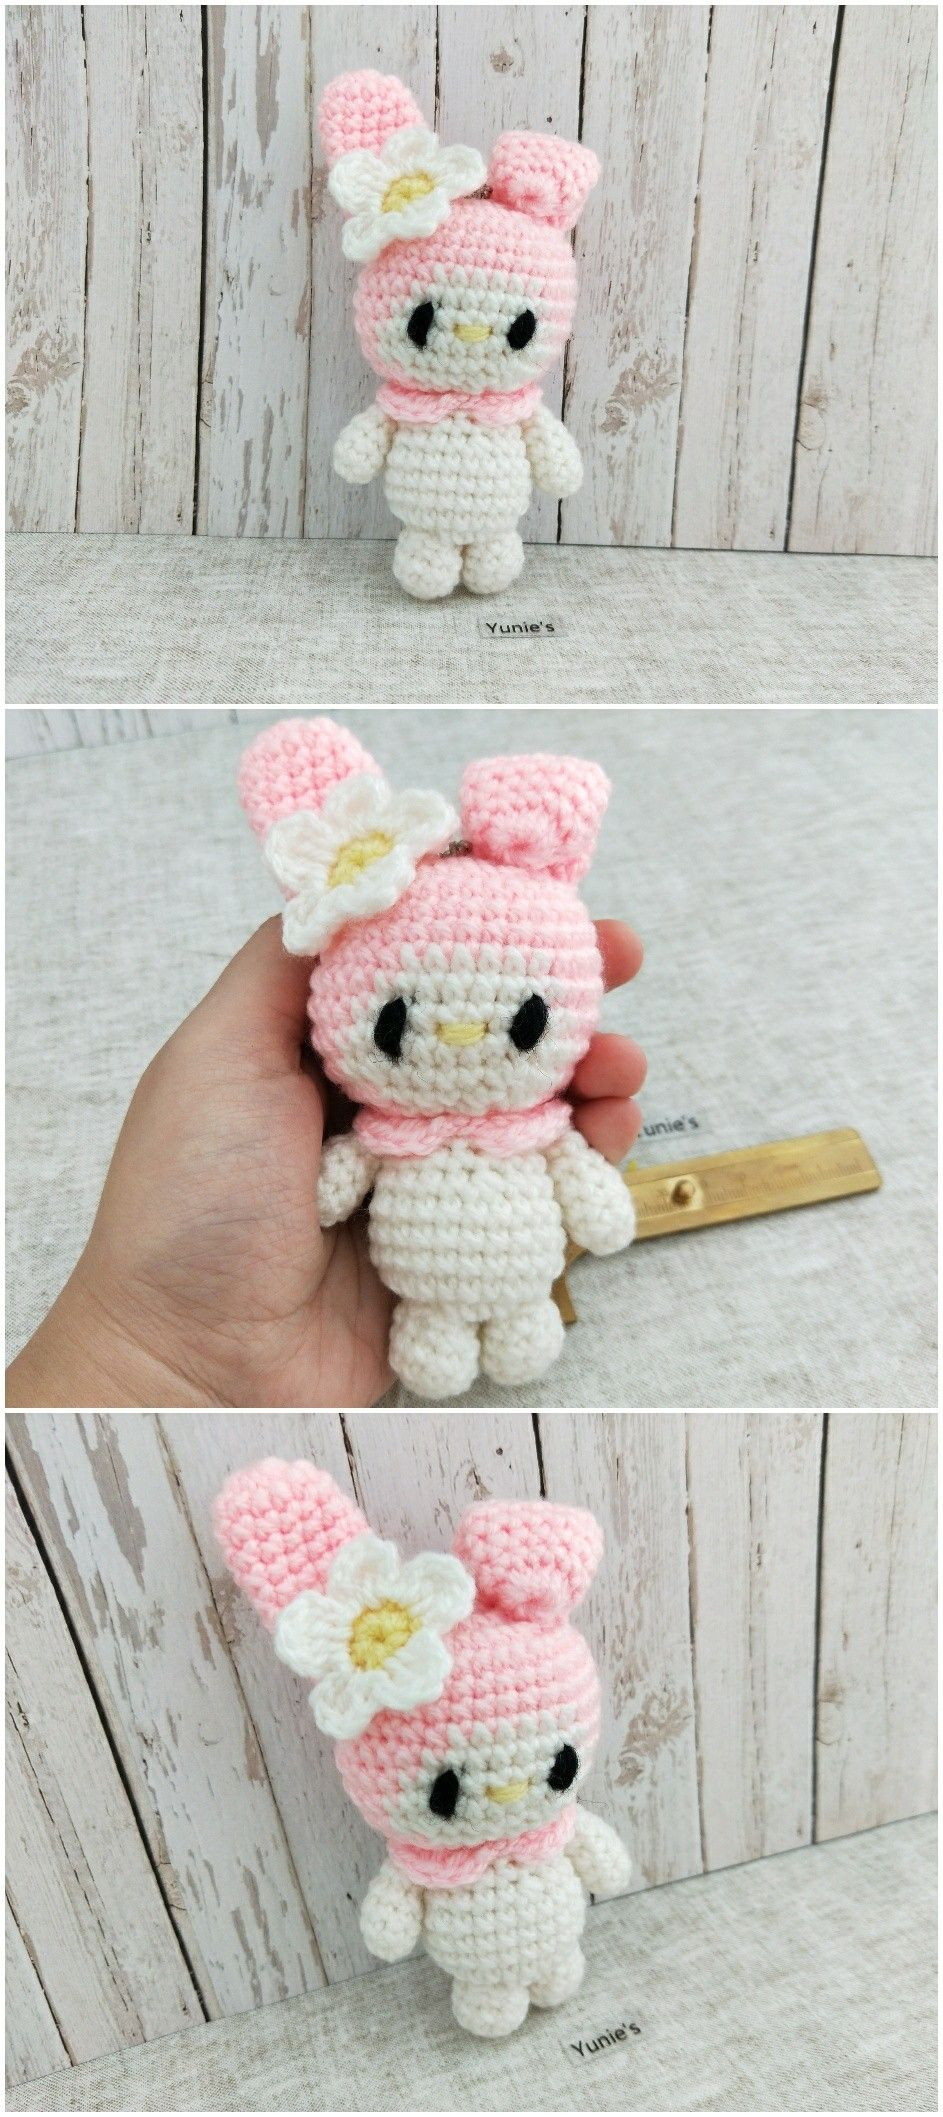 My melody amigurumi Crochet with love | Pinterest Mini-Mall Viral ...